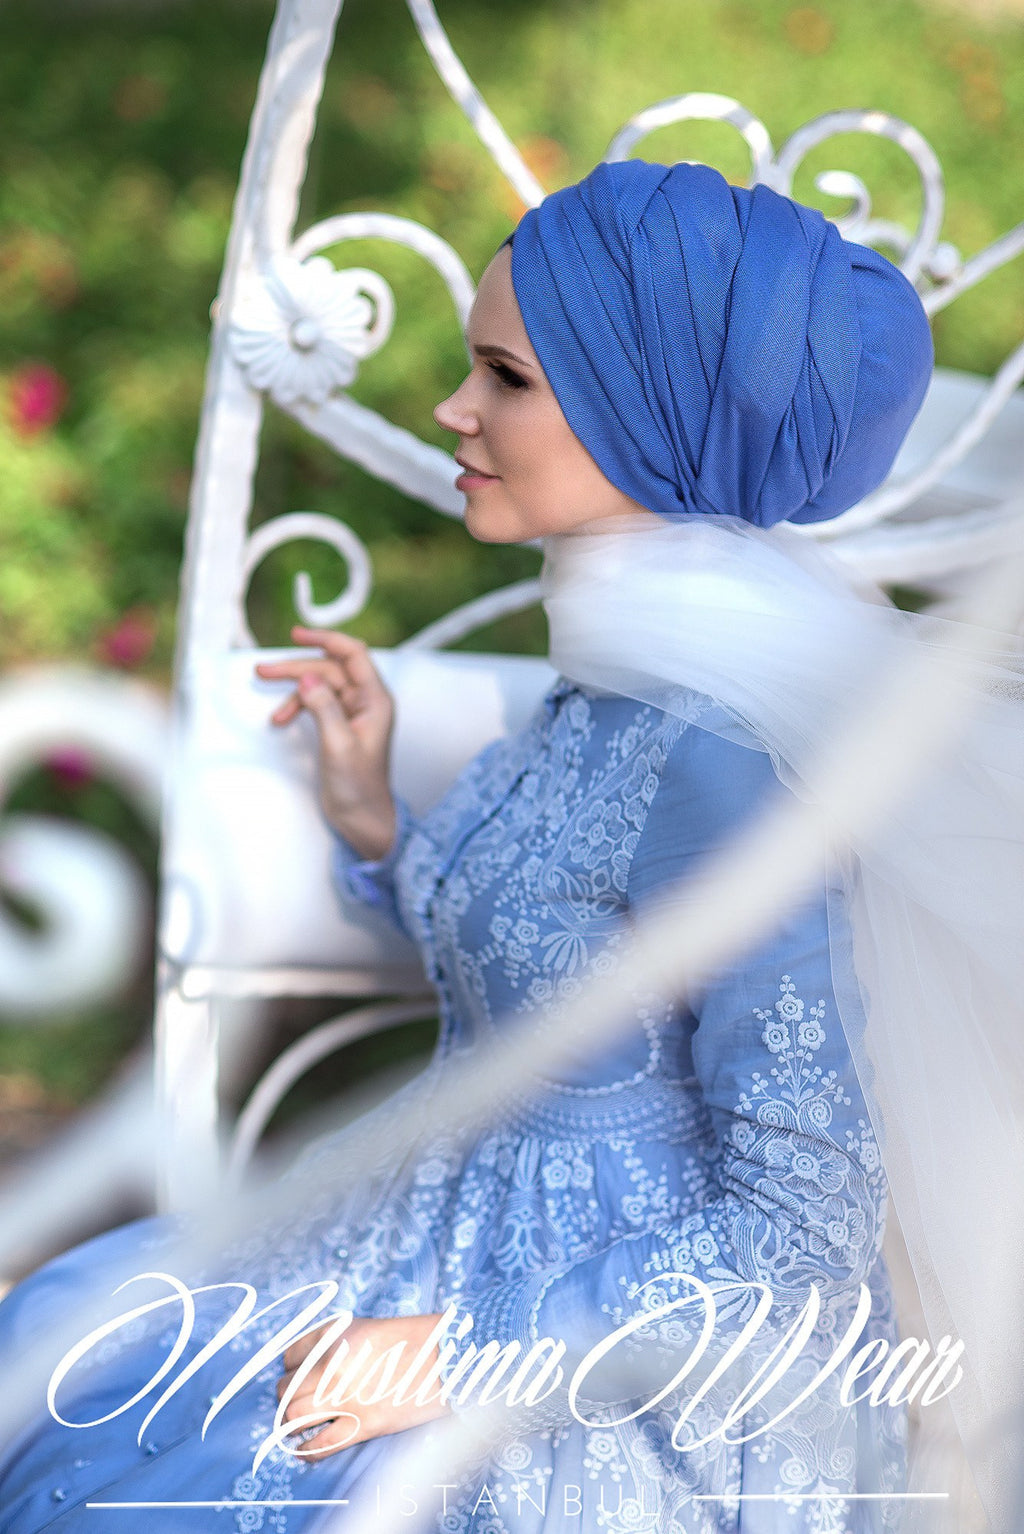 Queen Hijab Emerald Indigo Blue - Muslima Wear 2